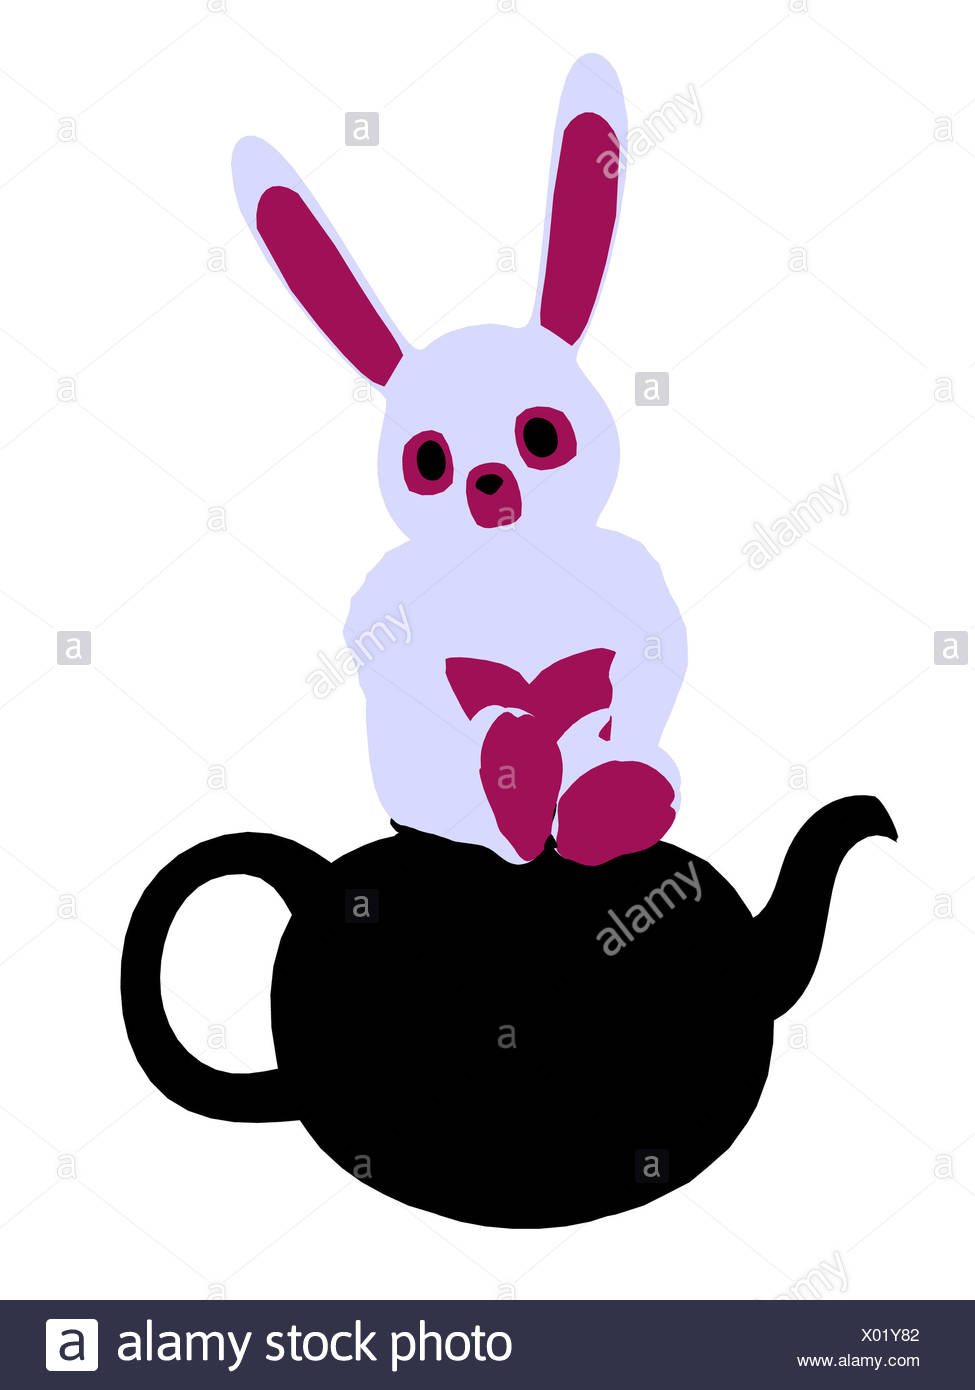 975x1390 Rabbit Silhouette Stock Photos Amp Rabbit Silhouette Stock Images